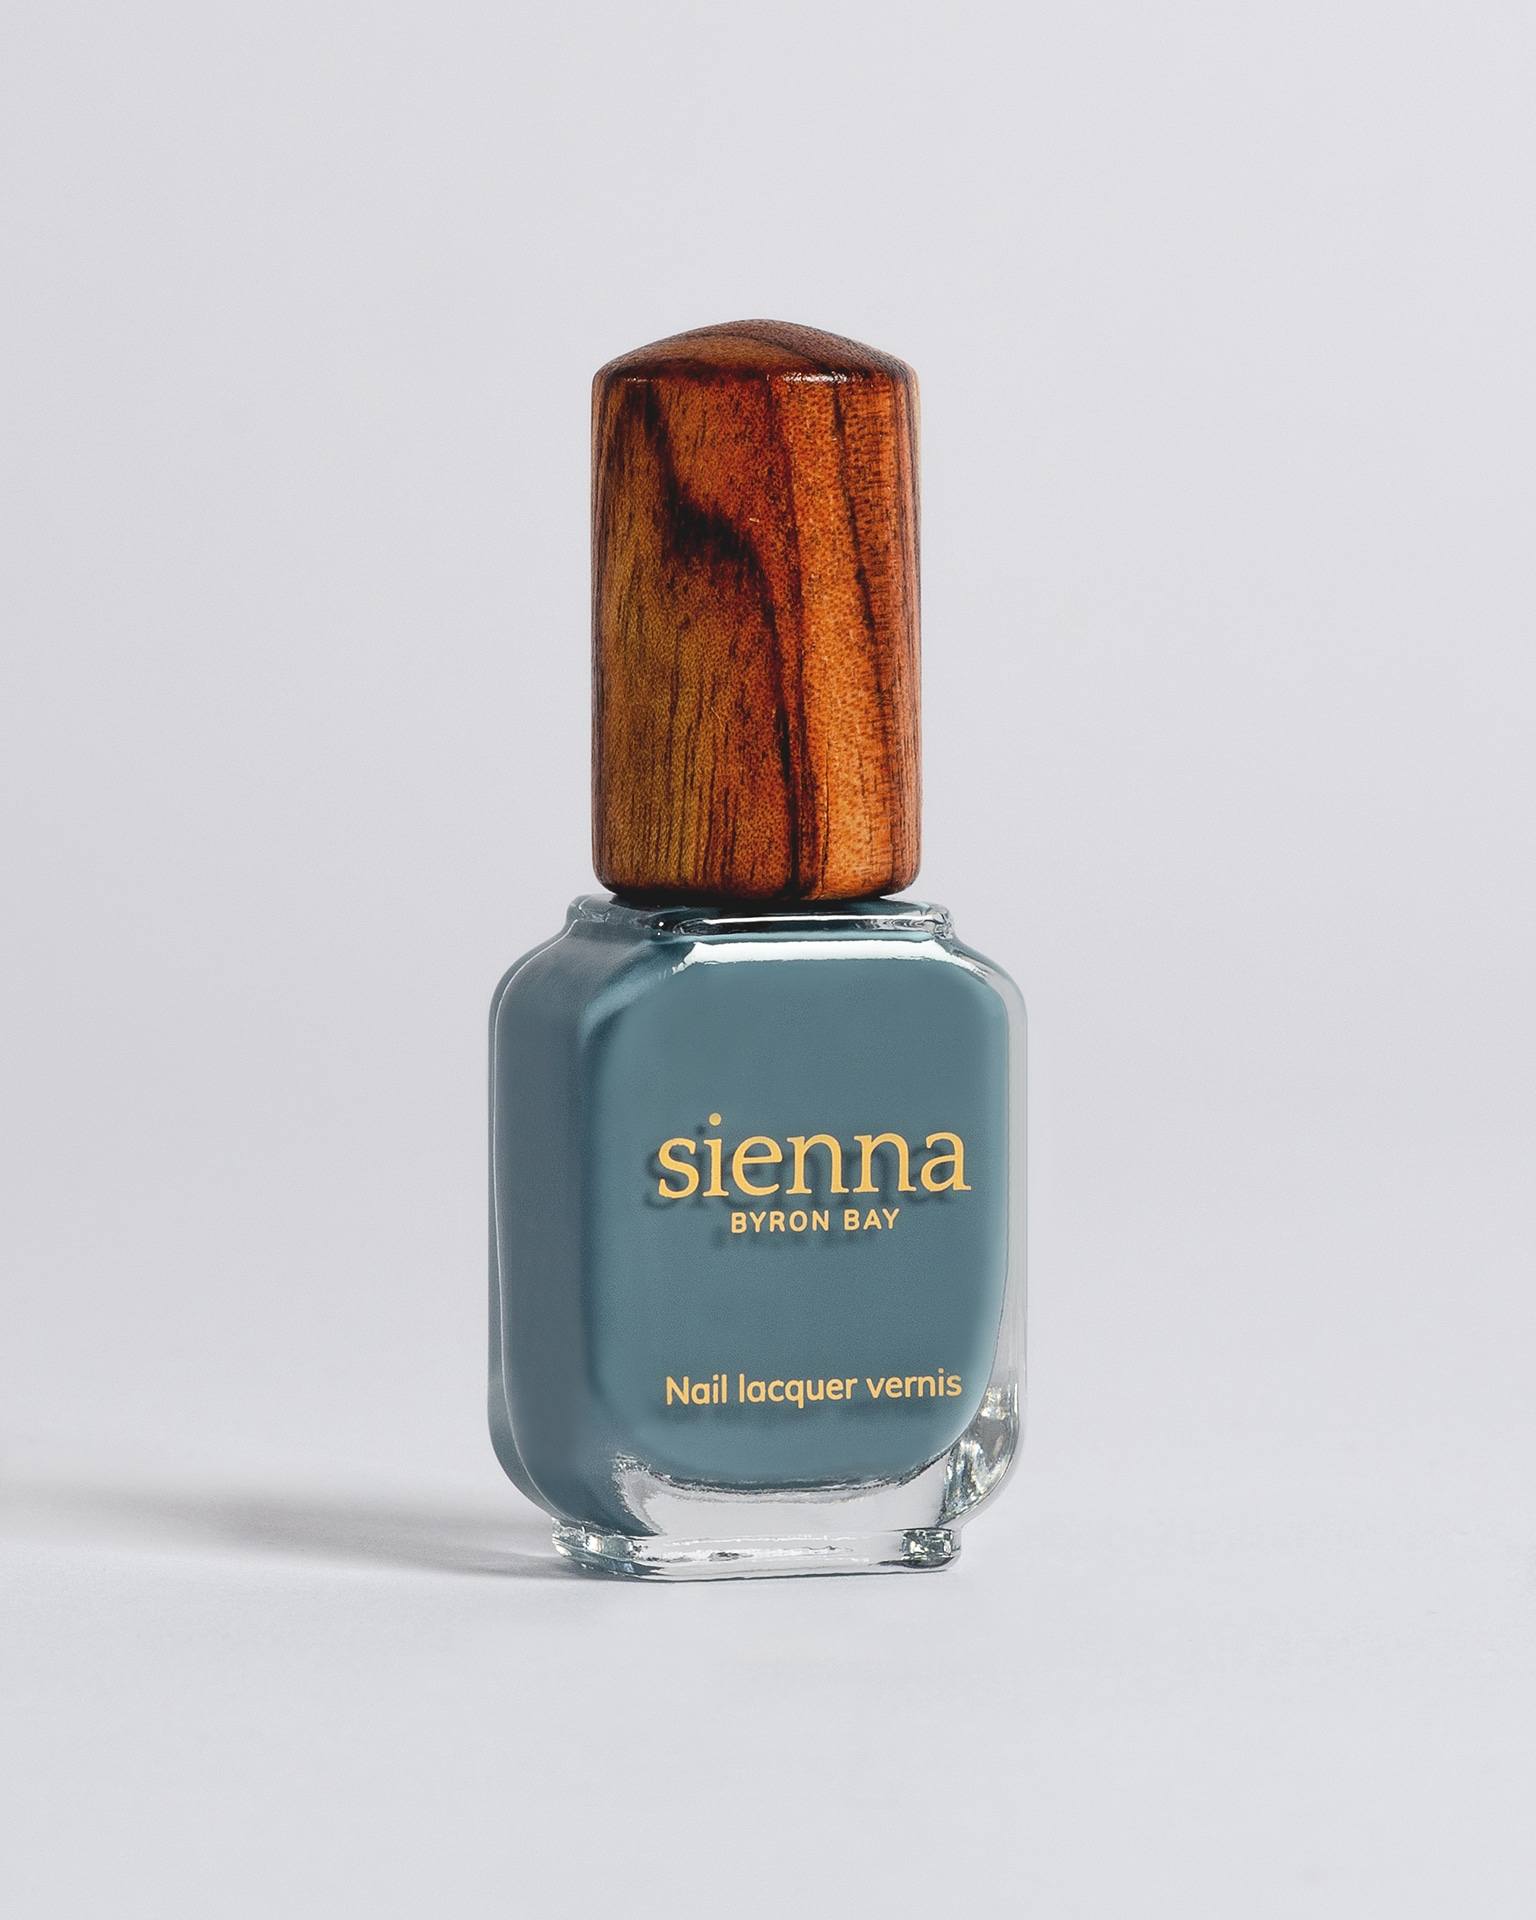 blue grey nail polish bottle with timber cap by sienna